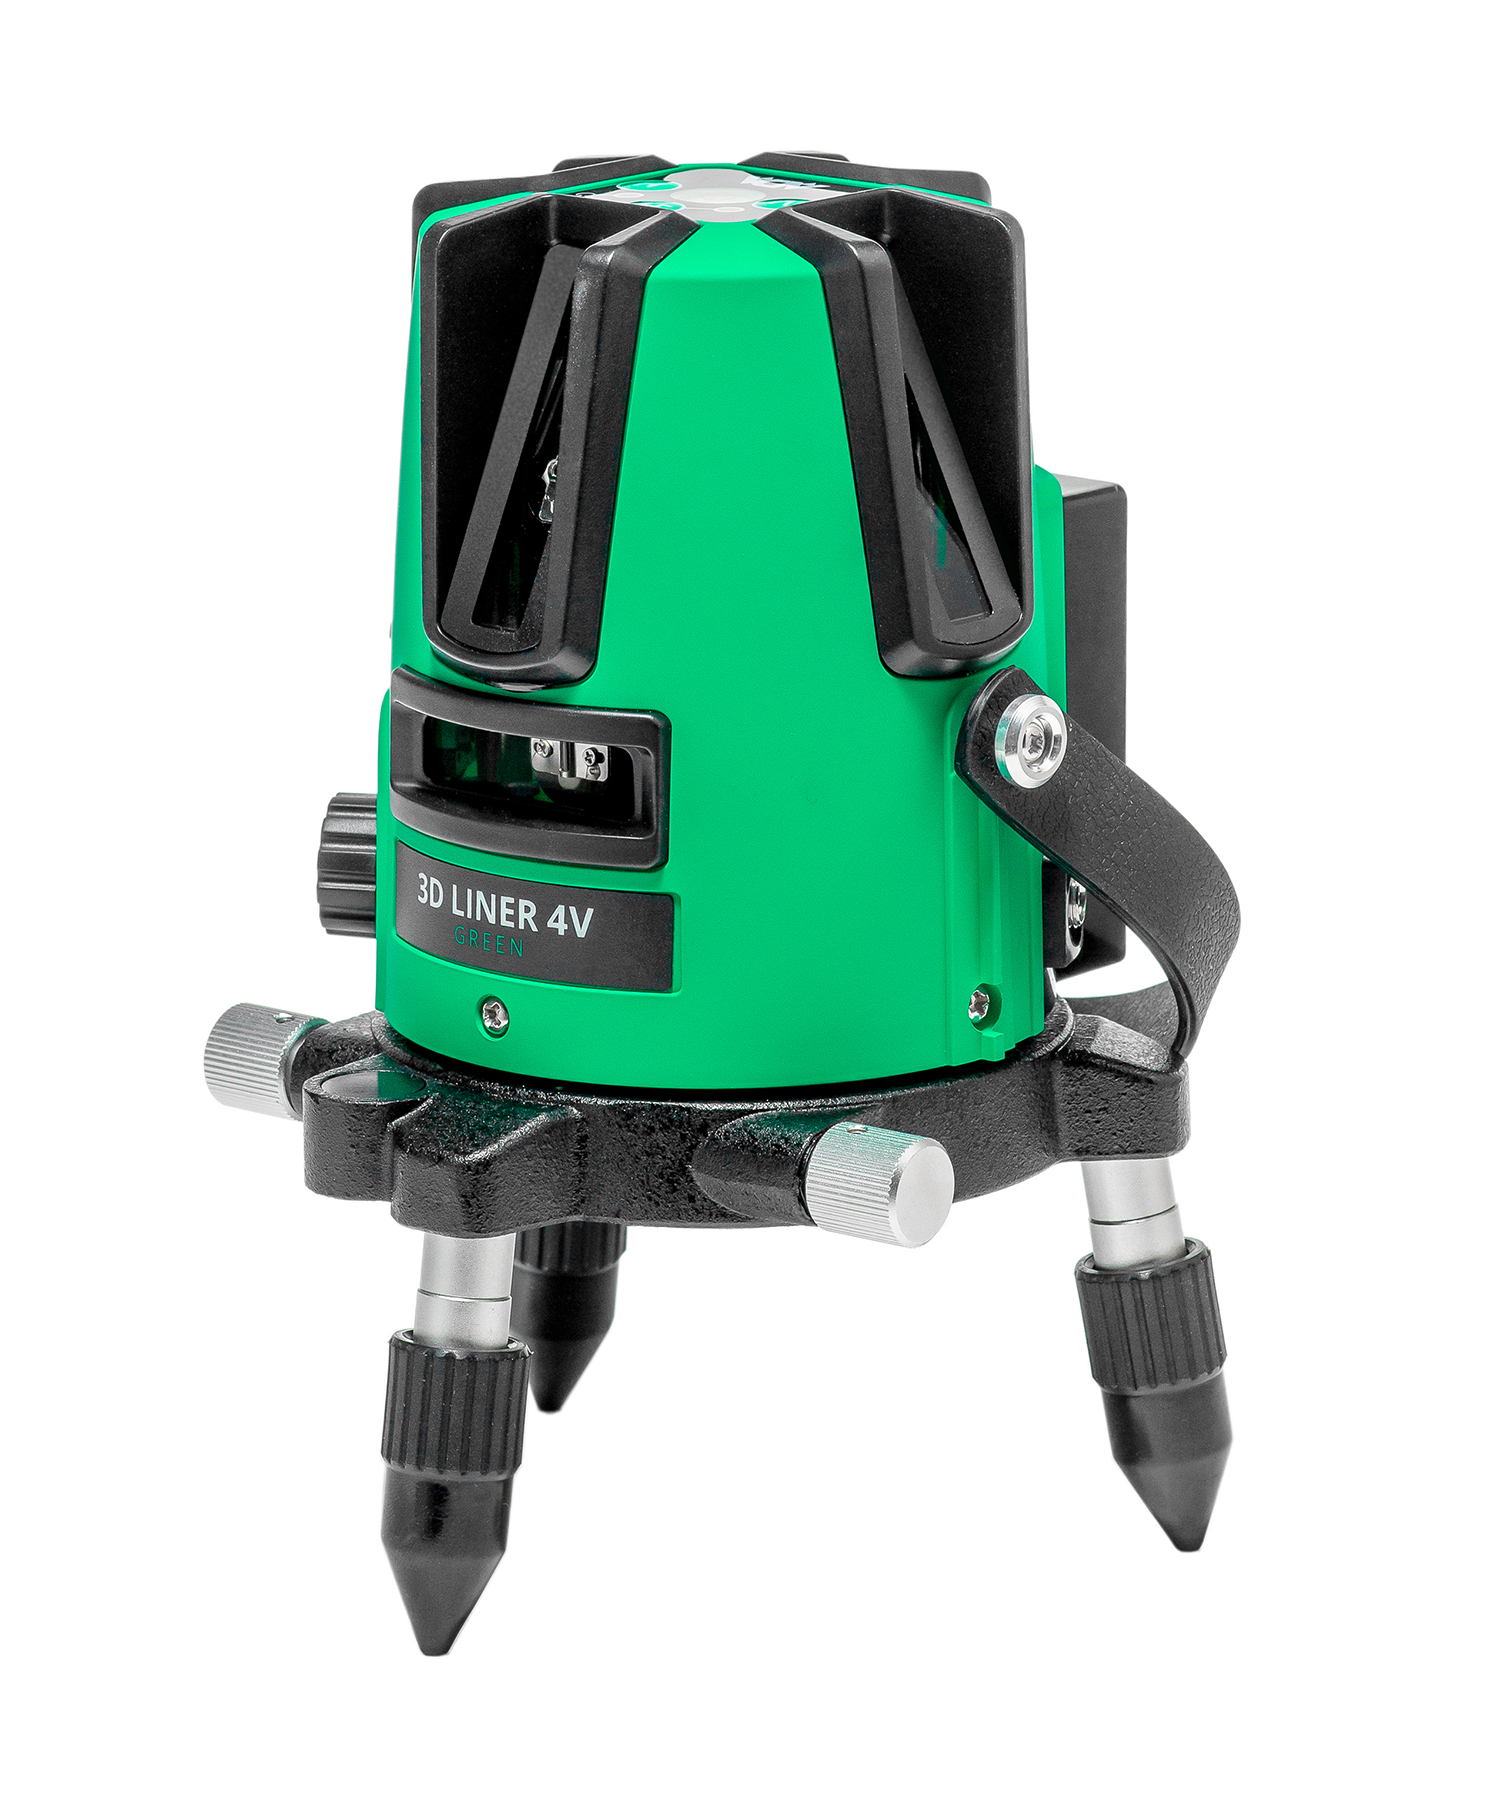 Laser level ADA 3D LINER 4V GREEN